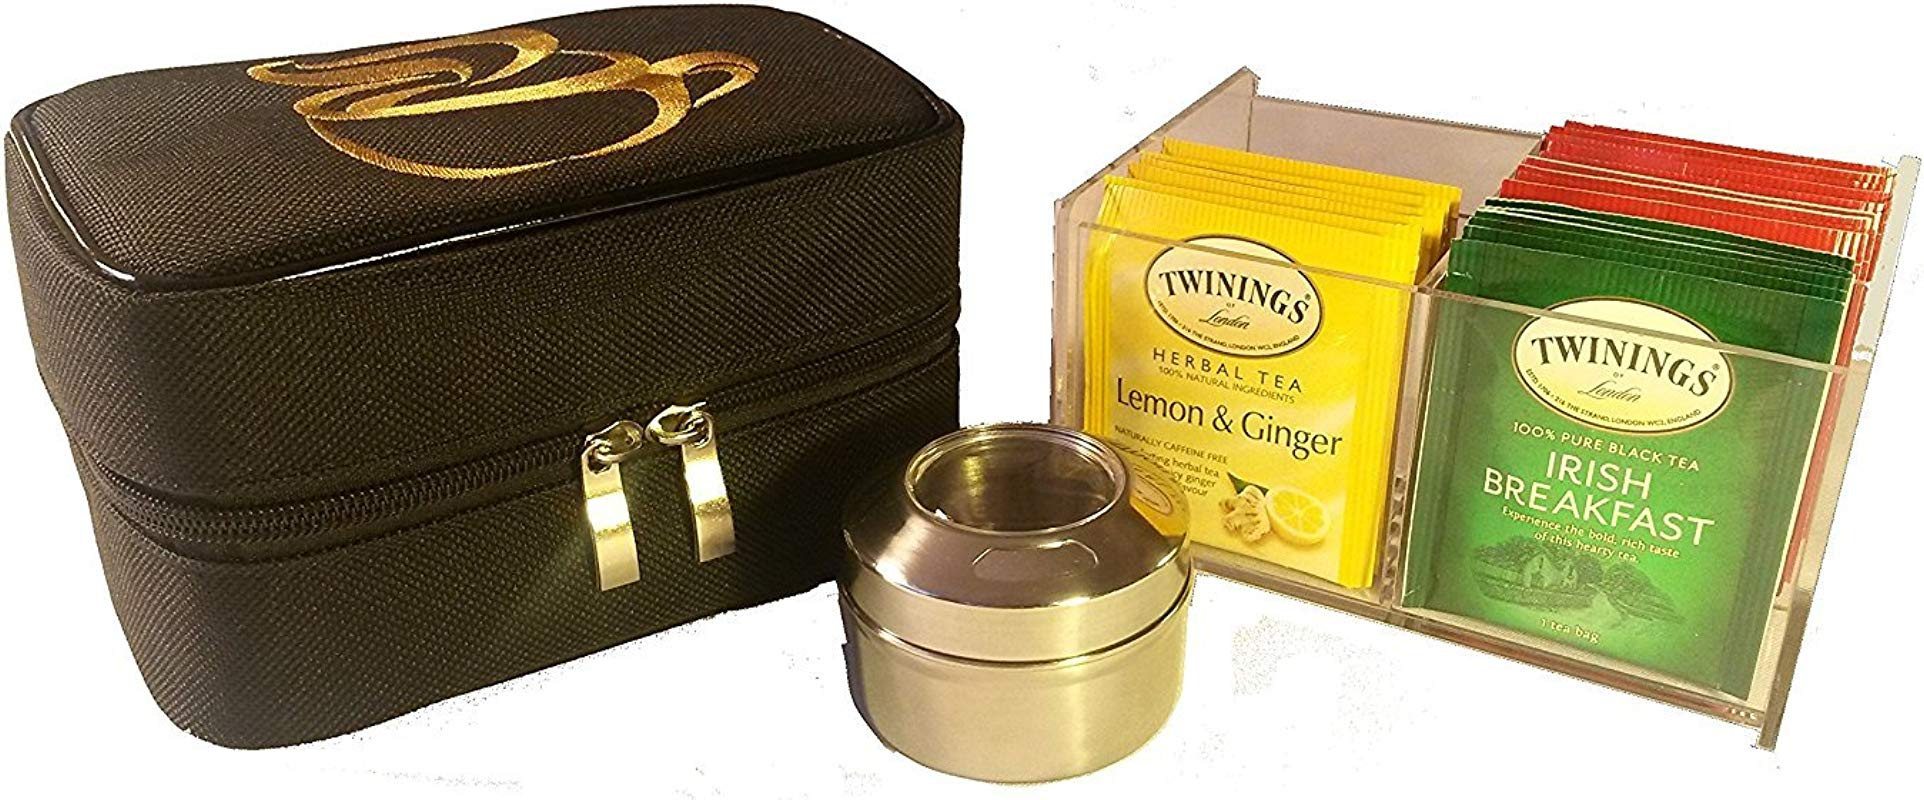 Teacaso Travel Tea Chest Organizer W Tea Bags And Spice Jar Great For Home Office Travel